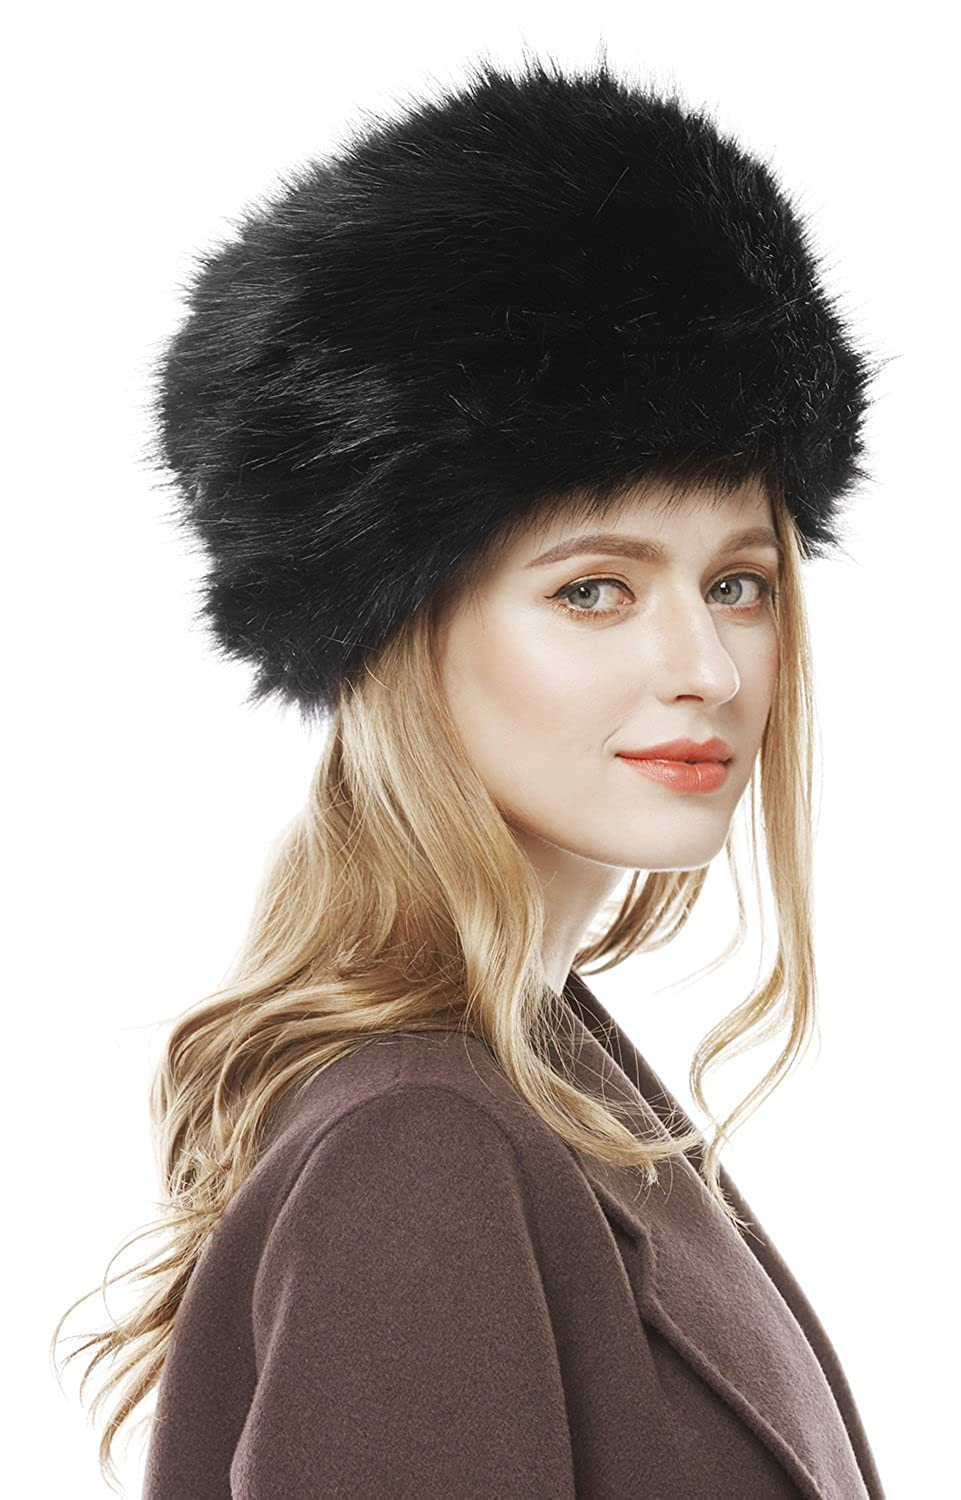 d9a786af9285 Lovful Winter Women Faux Fur Russian Cossack Style Hat Winter Wrap Hat,  Black, One Size at Amazon Women's Clothing store: